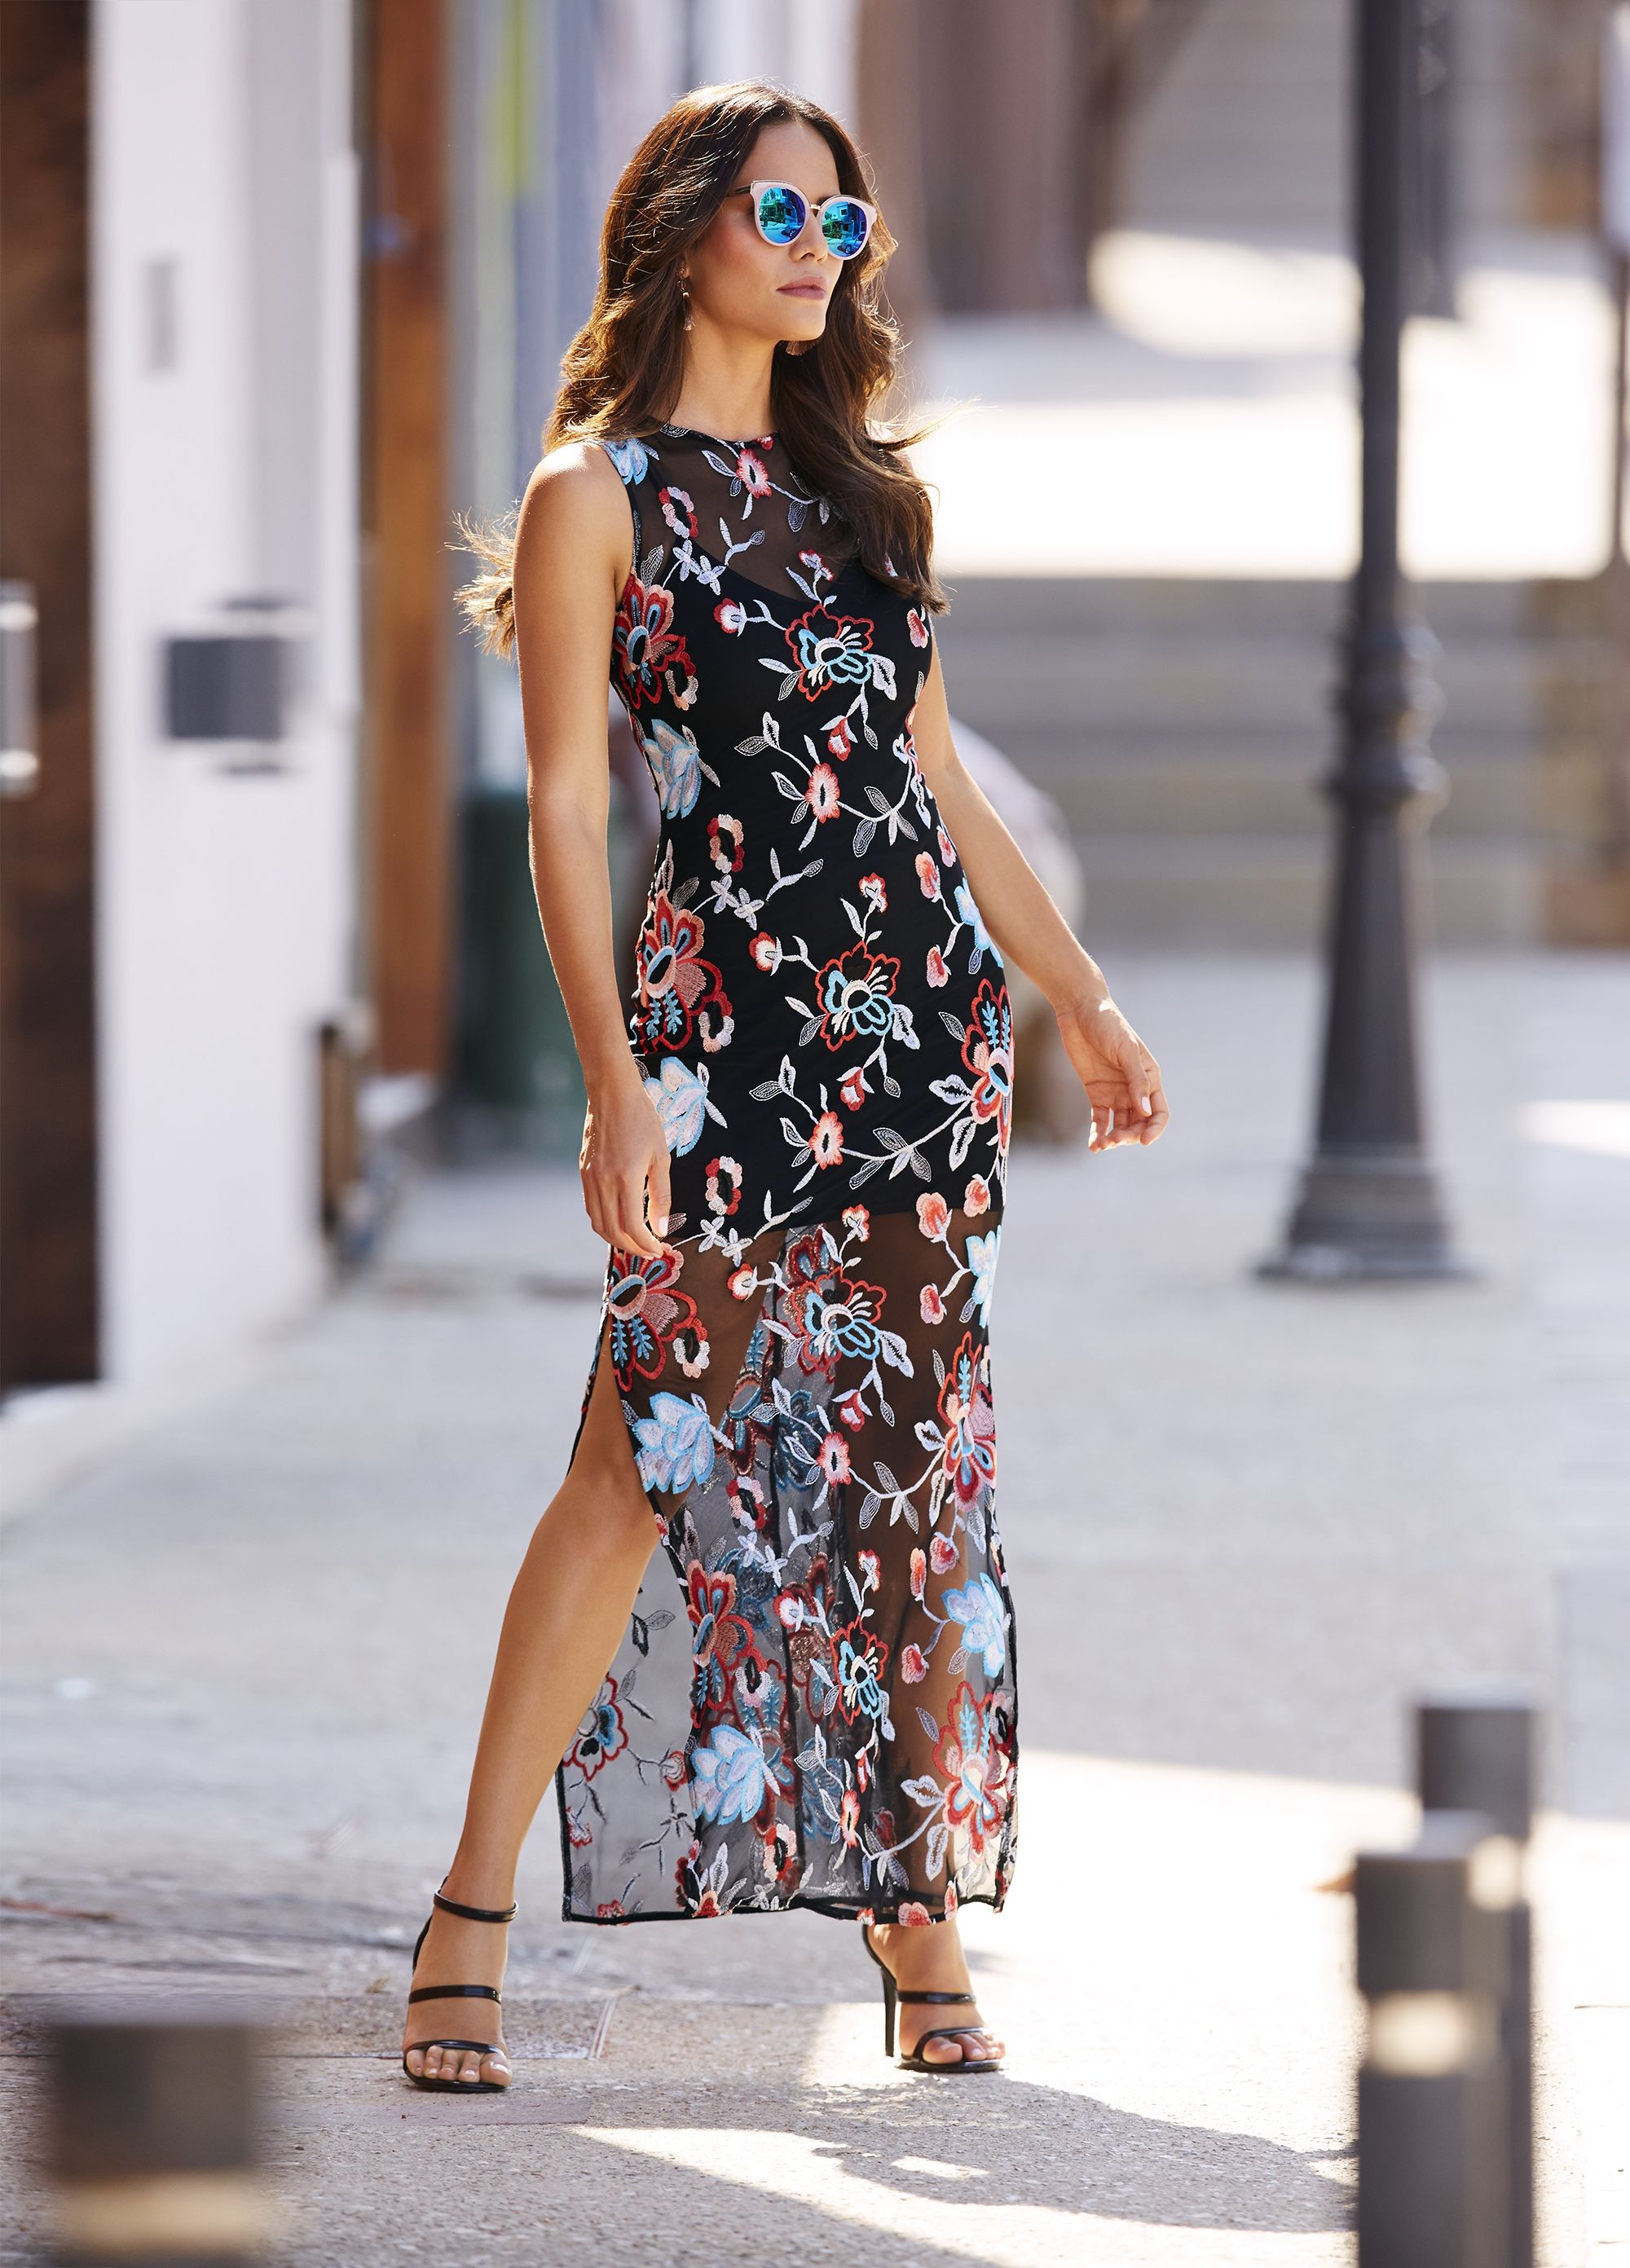 40e19e9f58a3 Sexy slits, colorful florals, and mesh details make this dress unforgettable.  #floral #mesh #meshdress #dress #floraldress